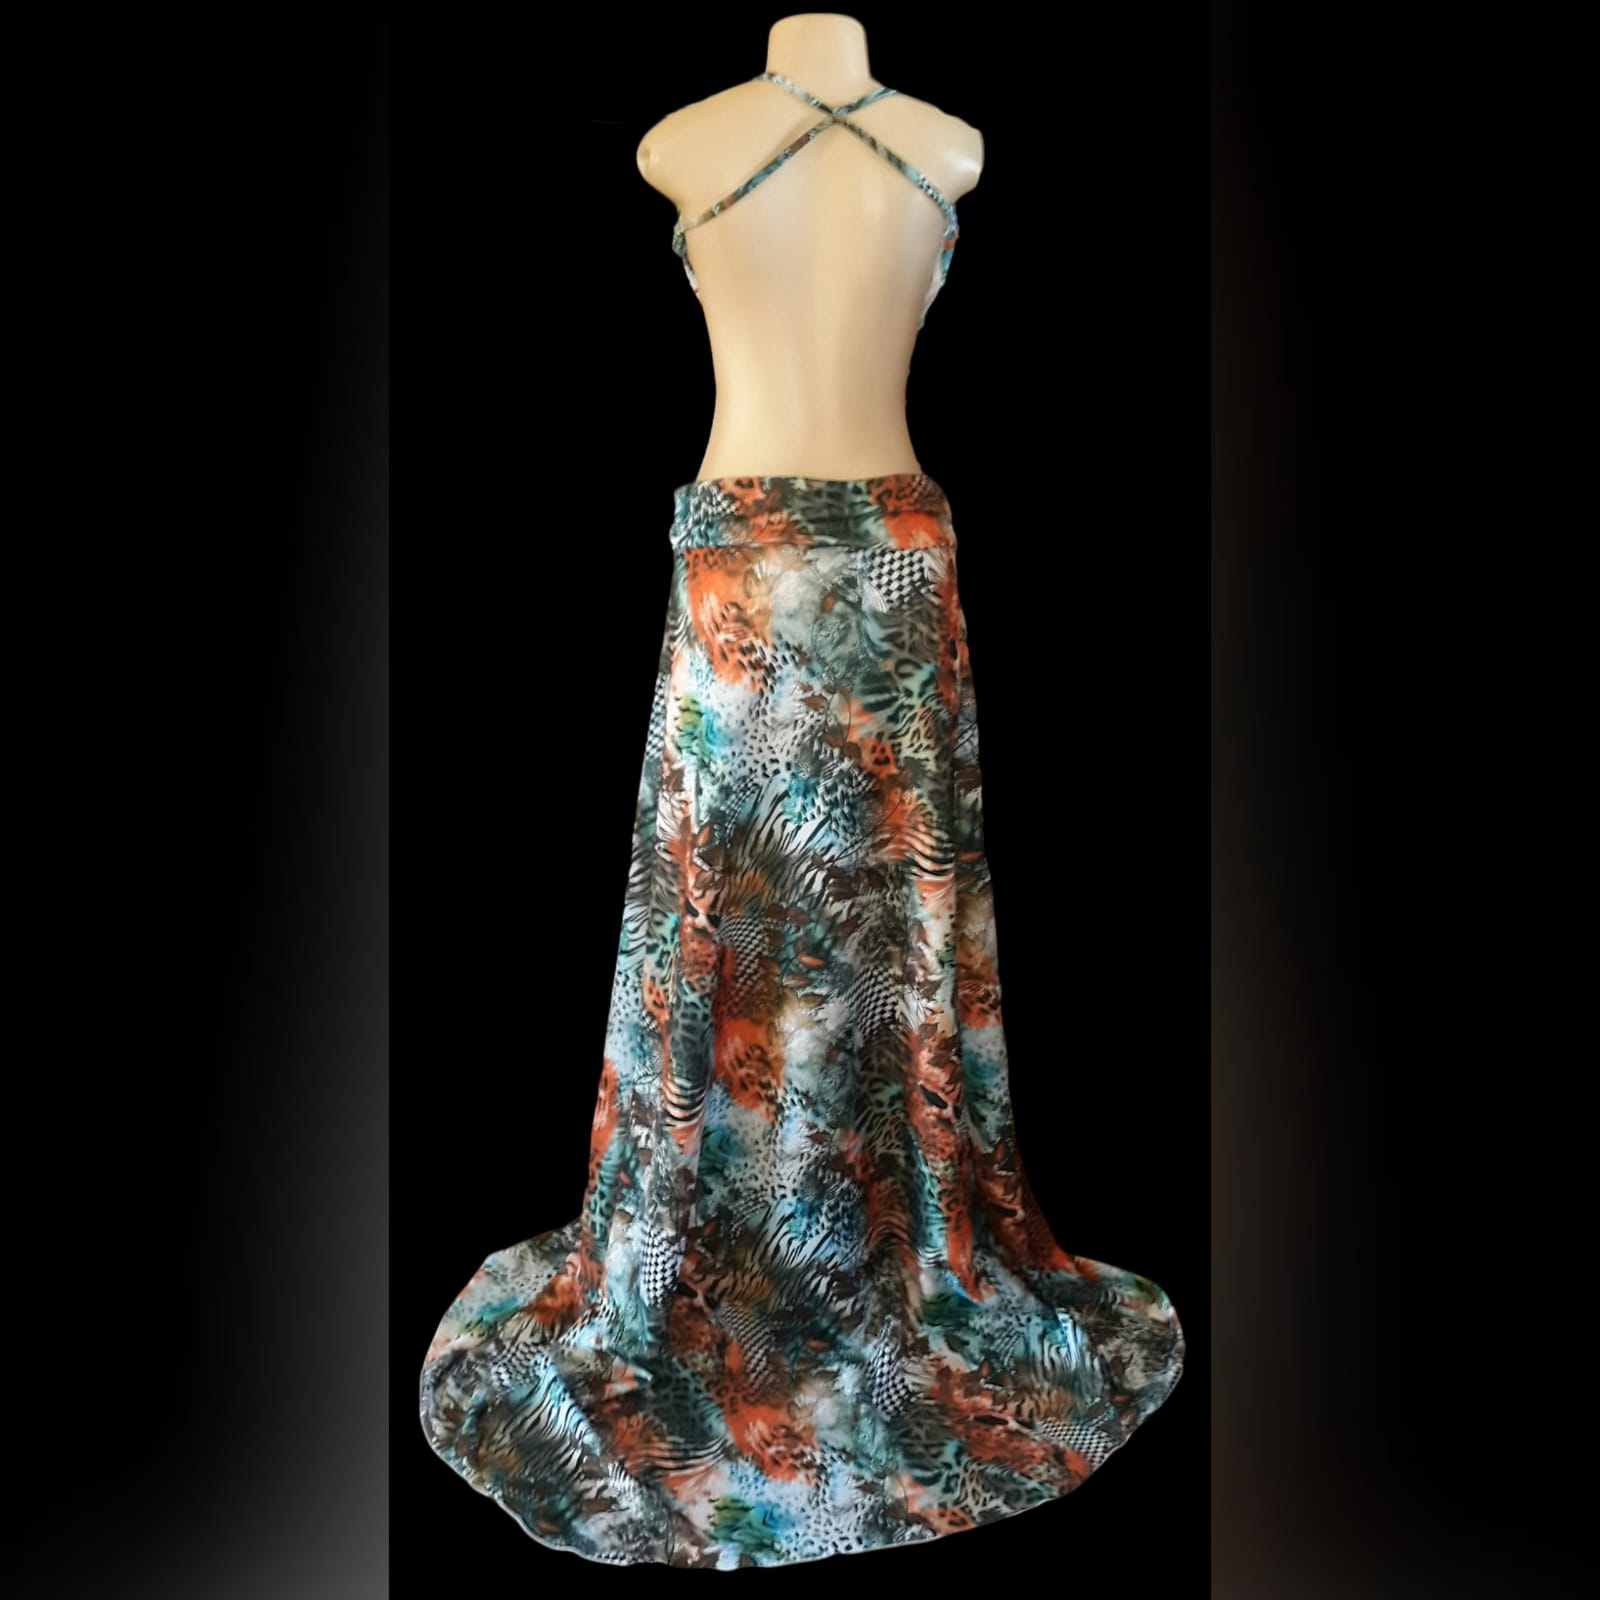 Printed long plunging neckline matric dance dress 4 printed long plunging neckline matric dance dress with a naked back and a train